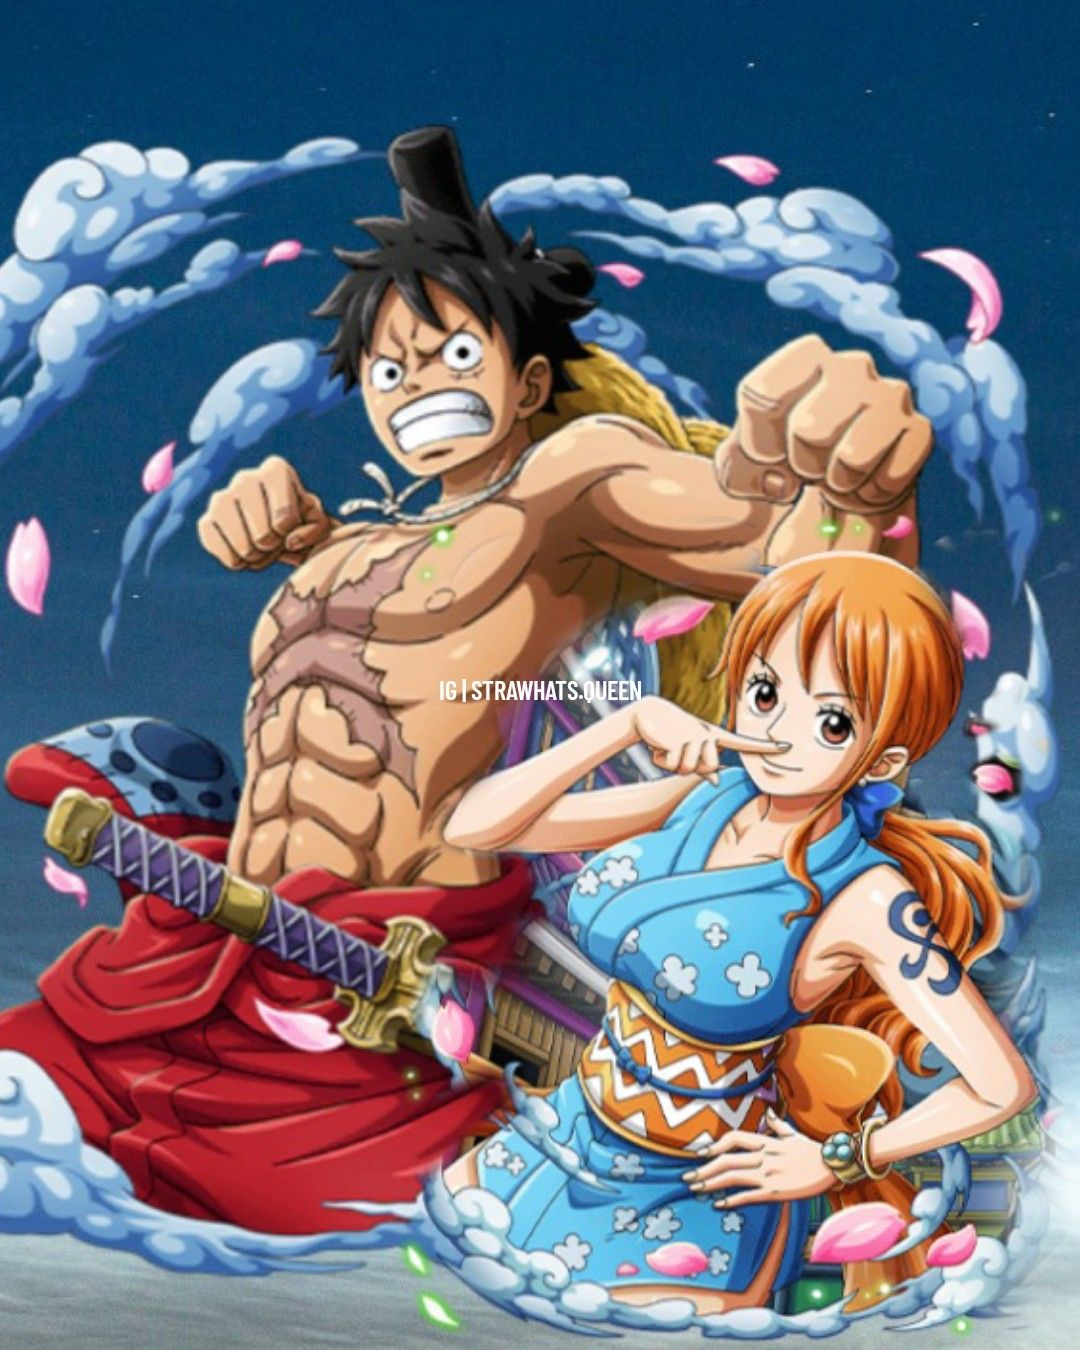 Pin by Giovanni Hernandez on My Edit in 2020 One piece